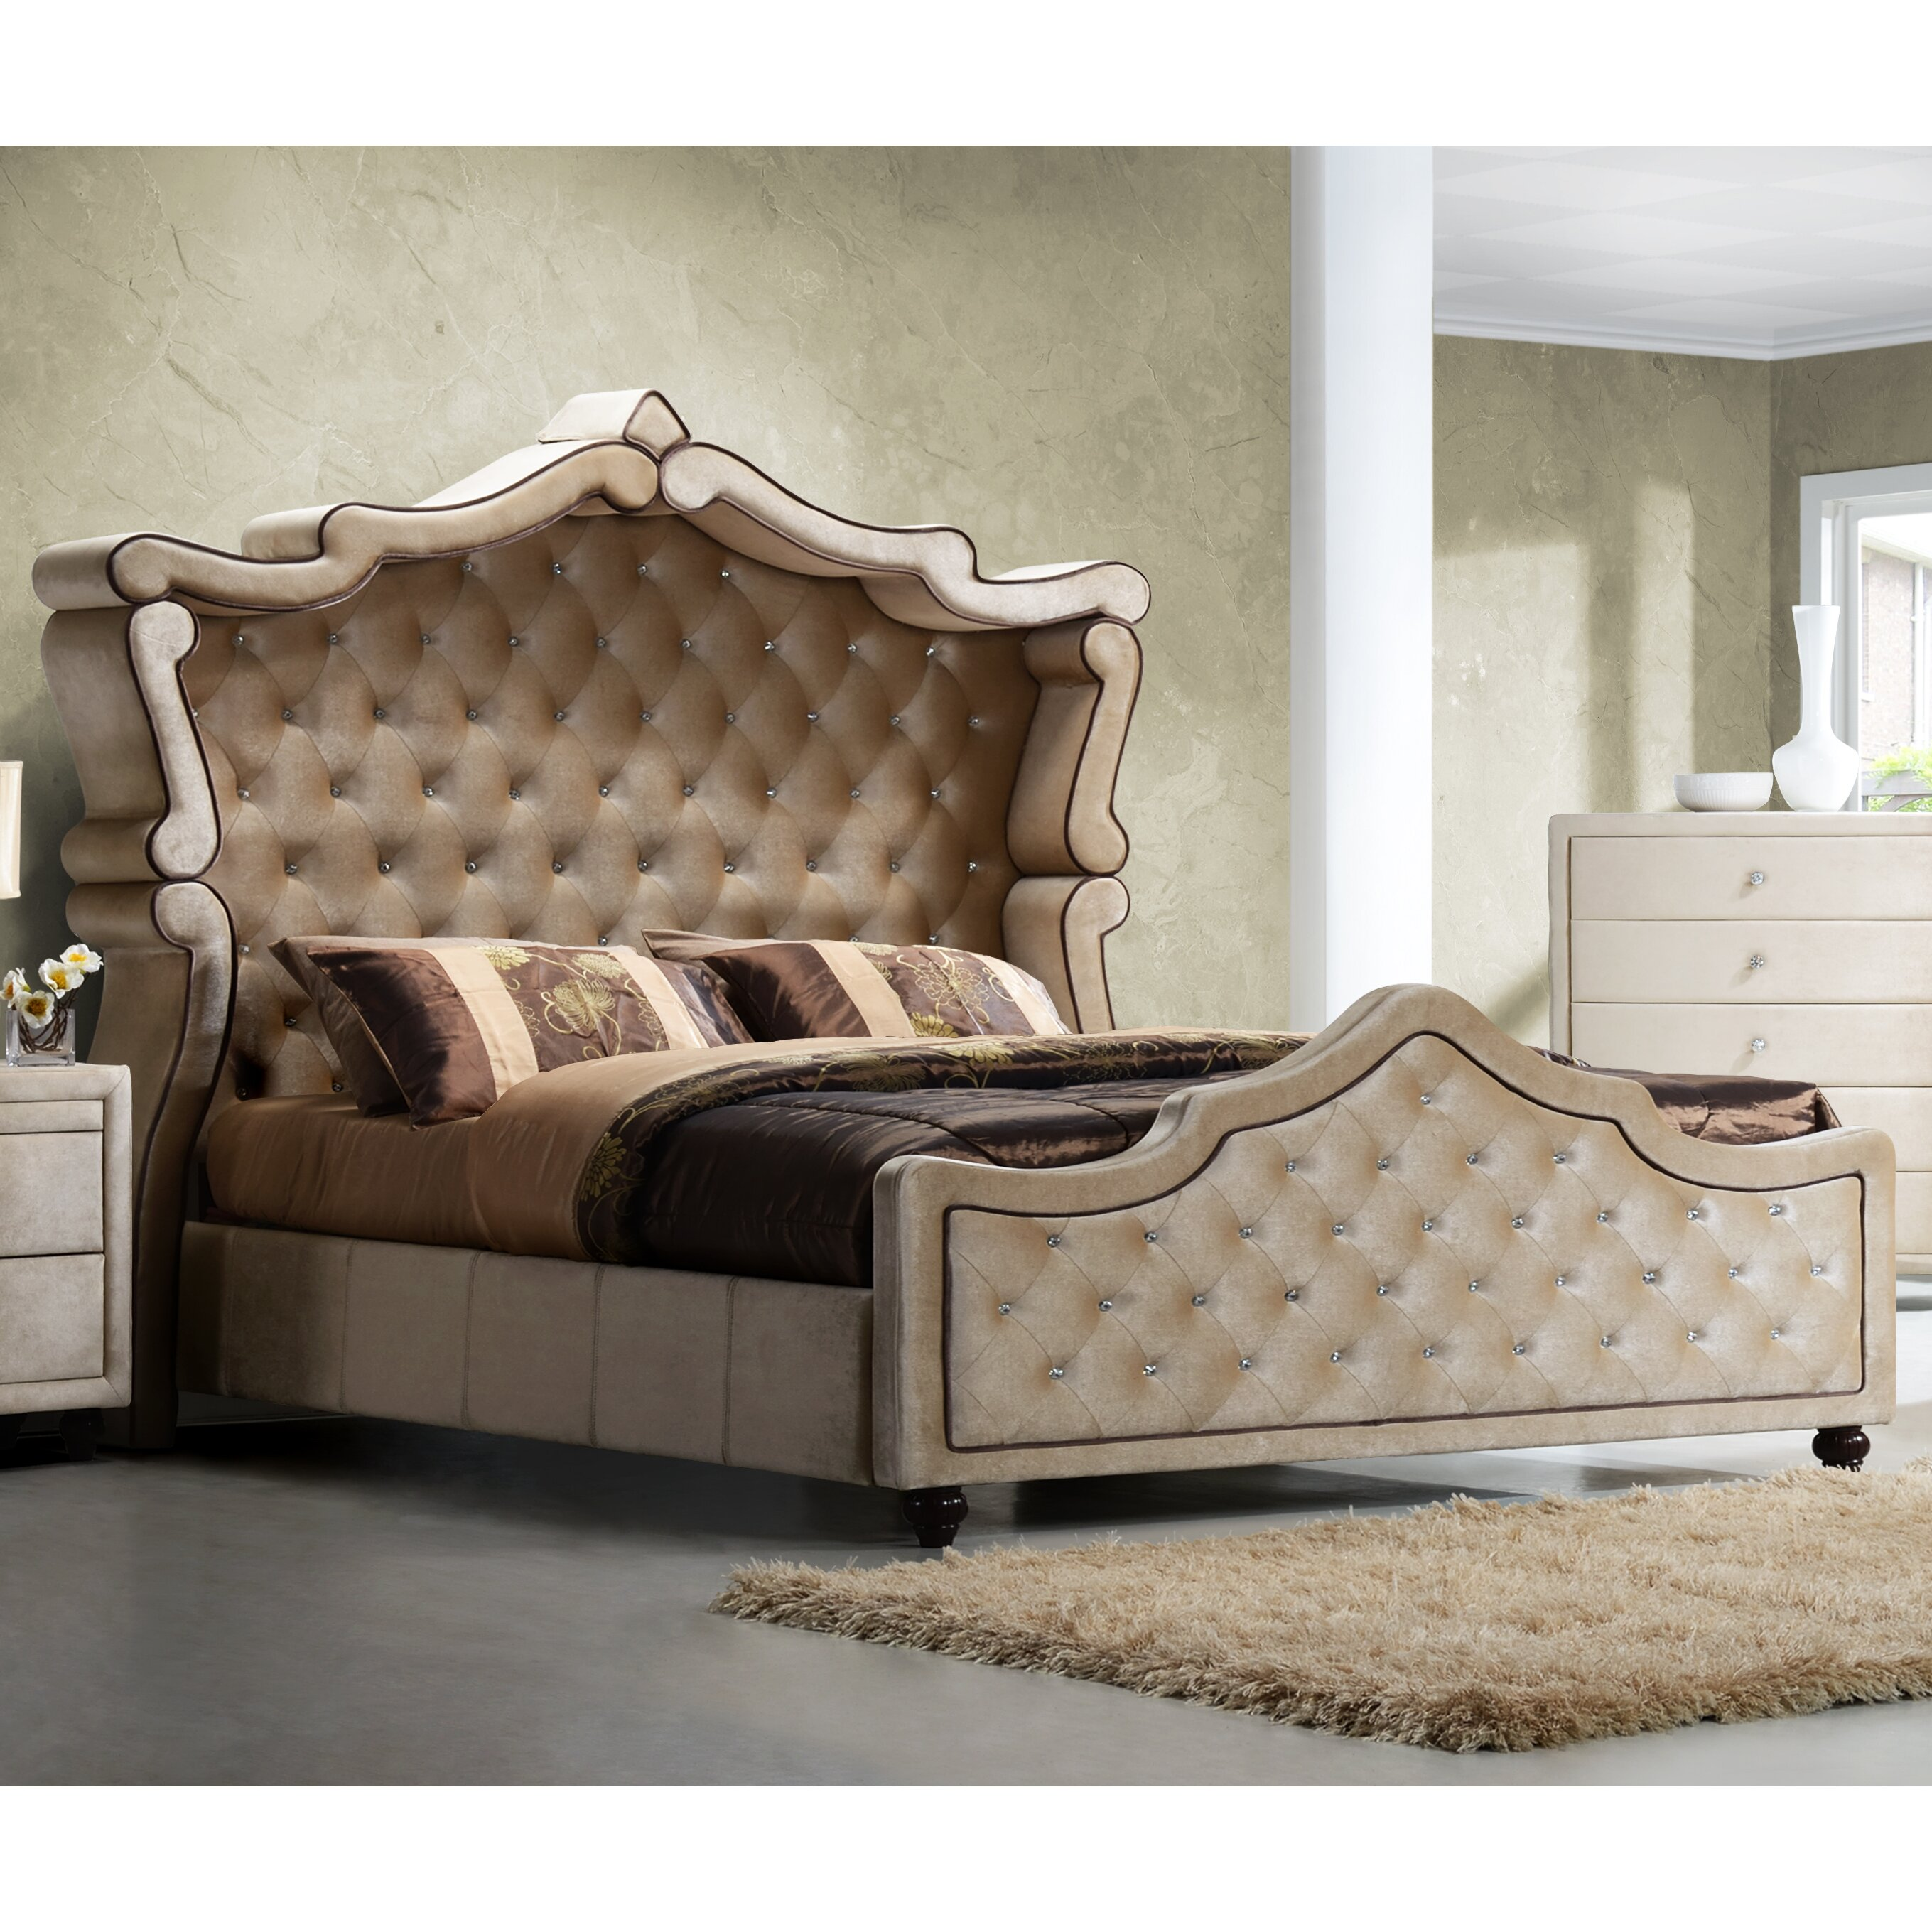 furniture bedroom furniture queen bedroom sets meridian furniture. Furniture  Bedroom Furniture Queen Bedroom Sets Meridian Furniture.